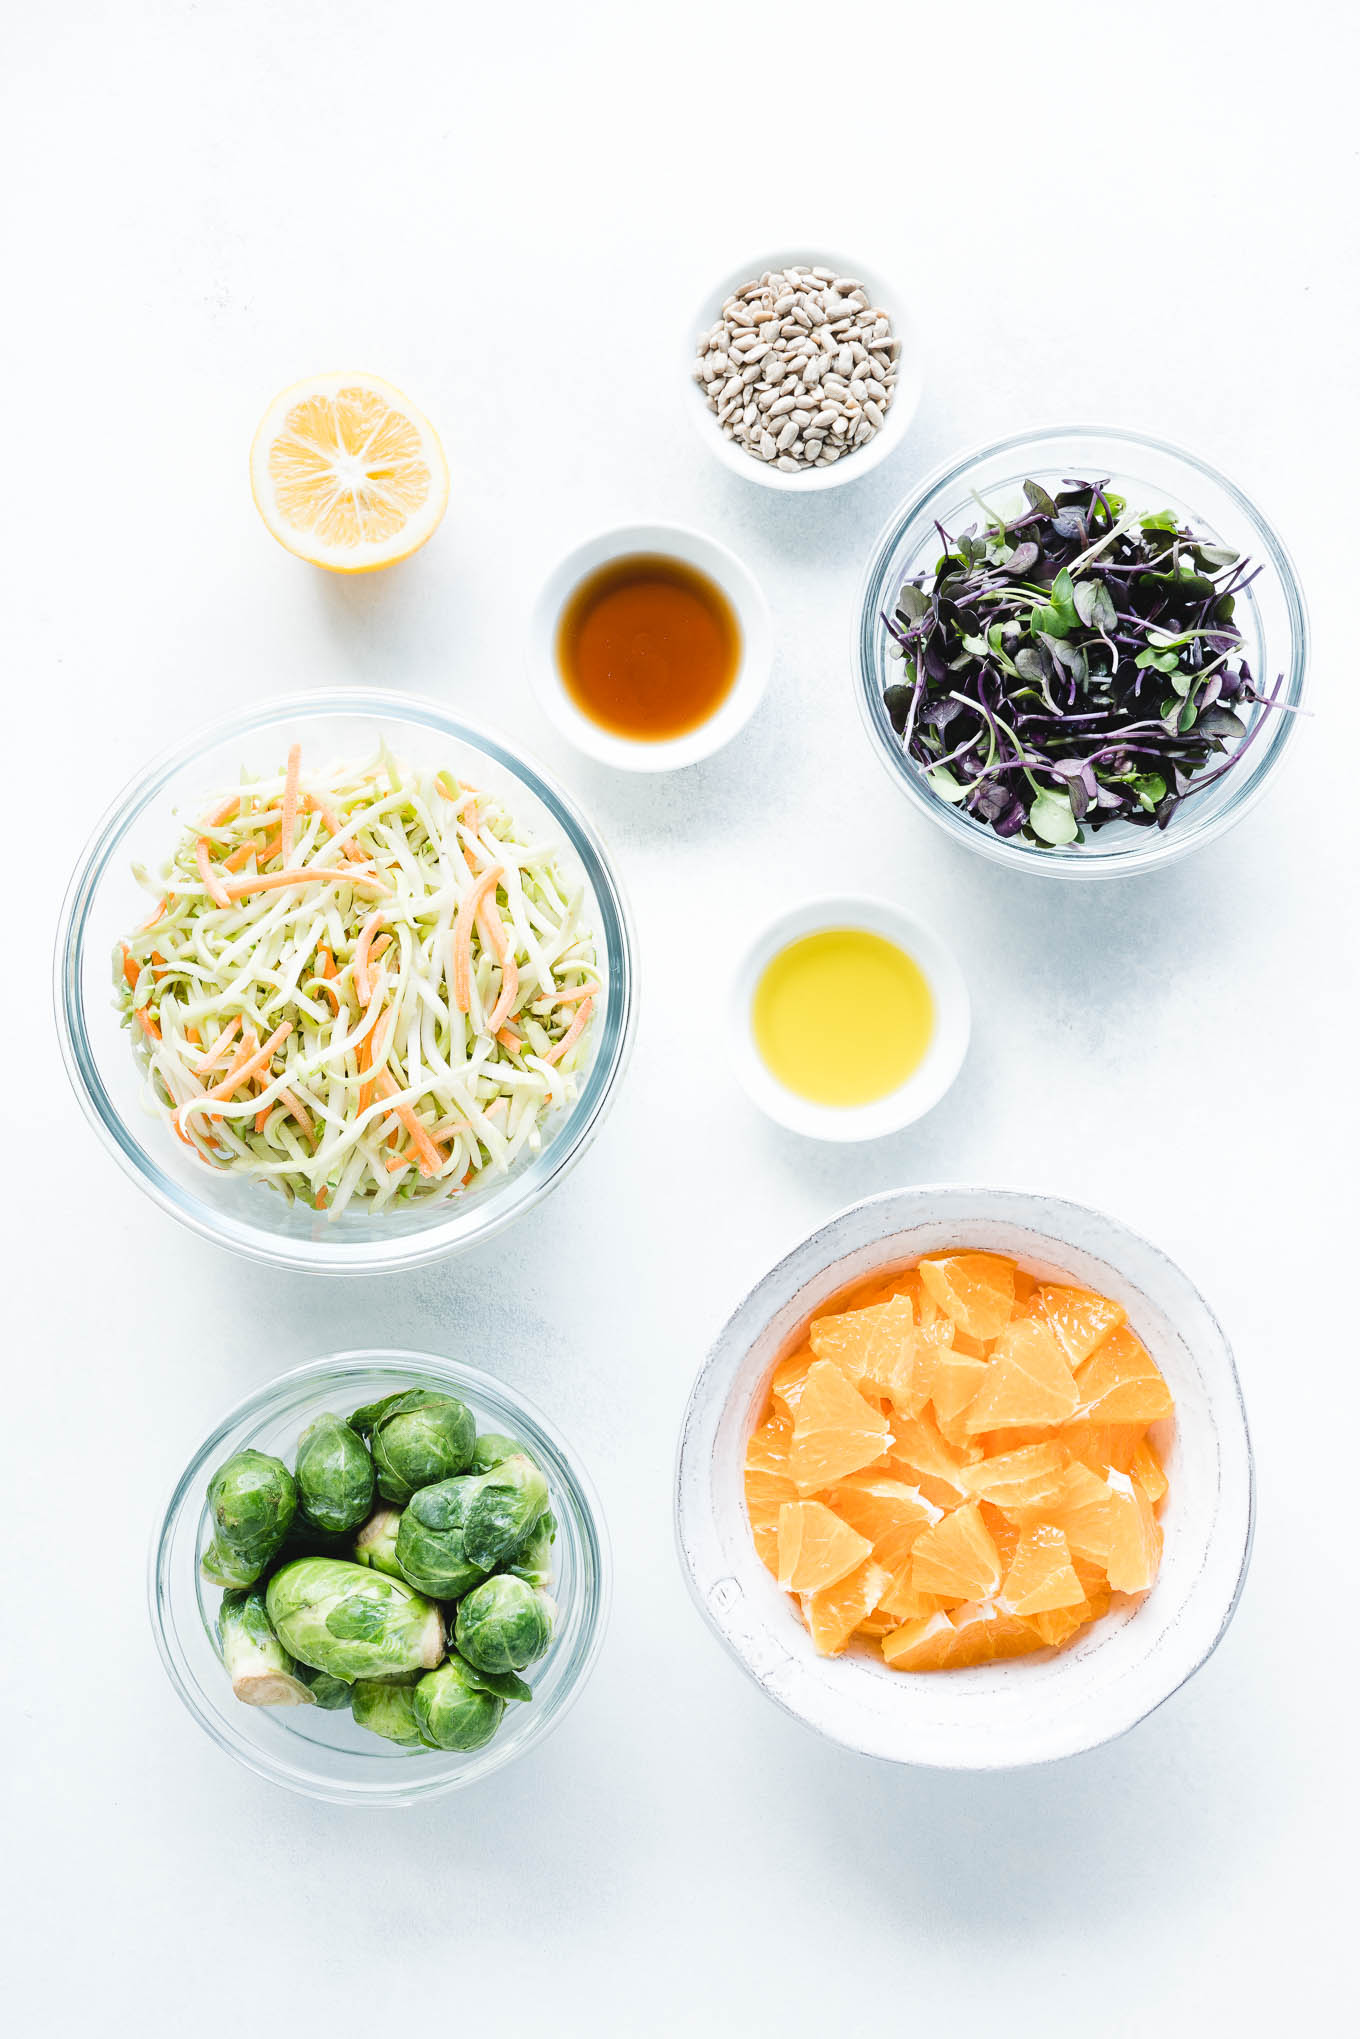 Raw Brussels Sprout Salad with Oranges Ingredients In Bowls